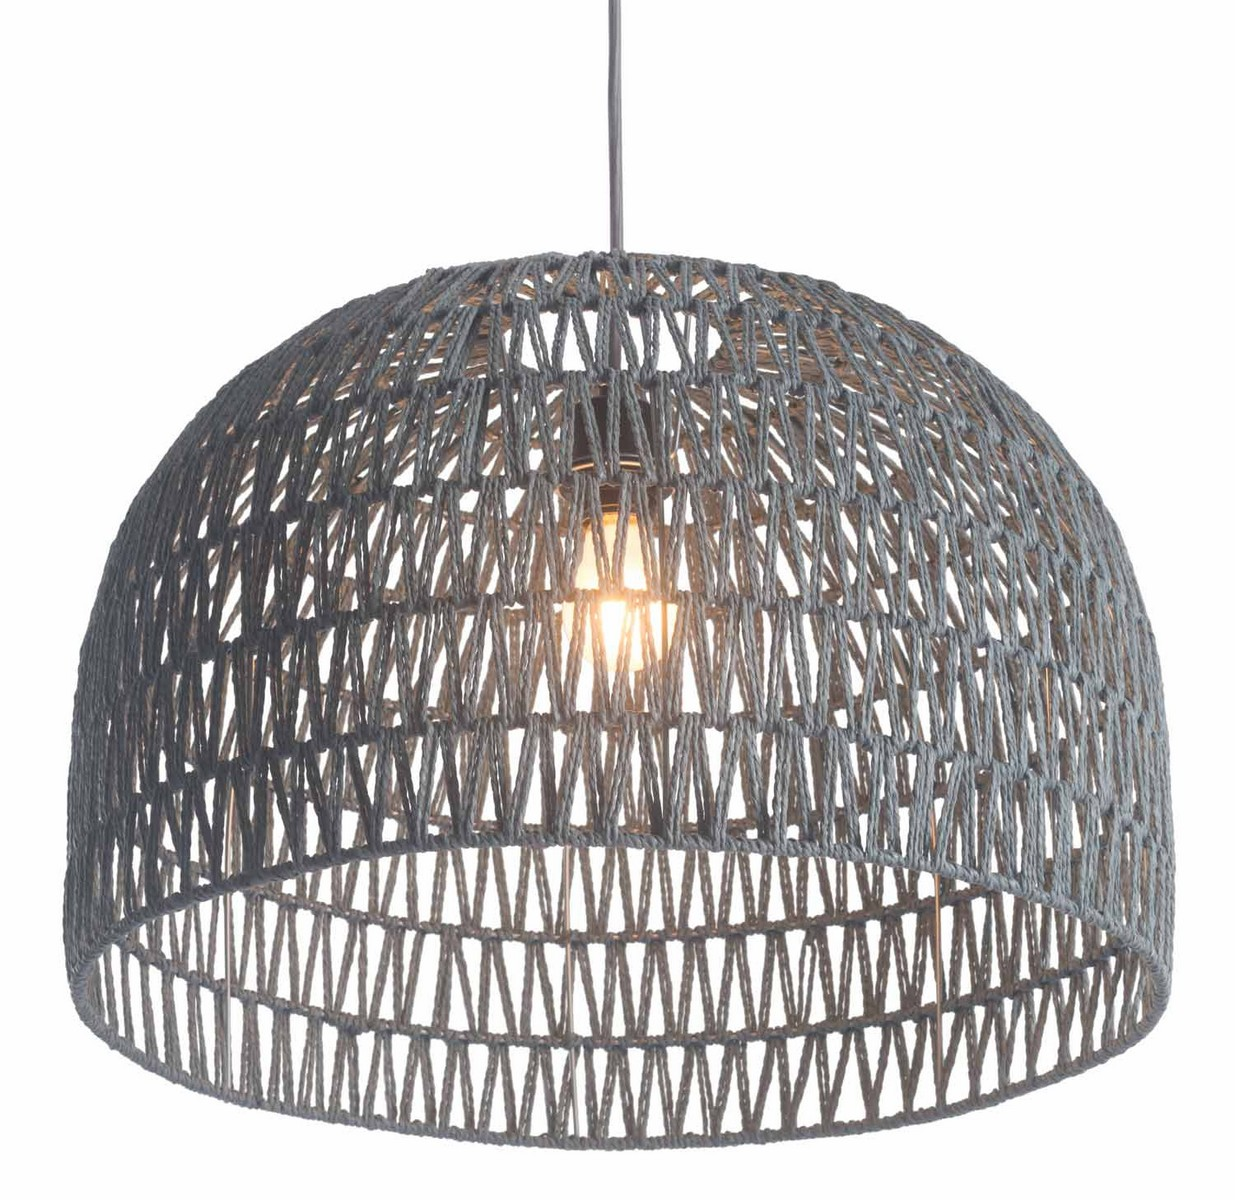 Zuo Modern Paradise Ceiling Lamp - Gray